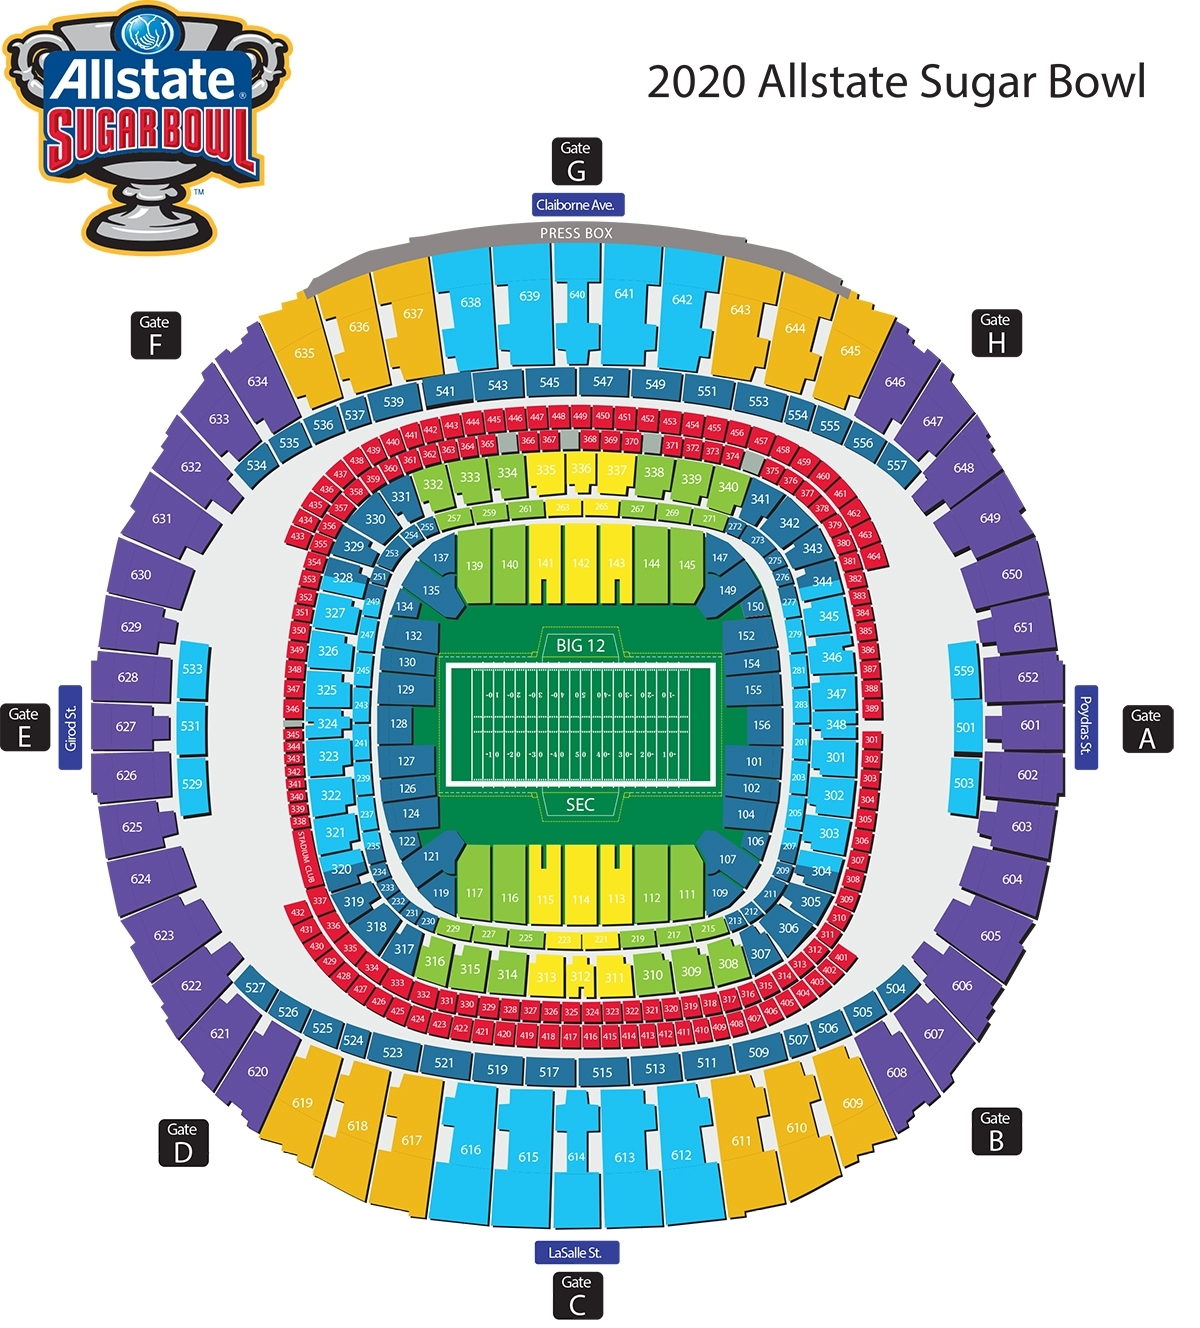 Seating Diagram - Official Site Of The Allstate Sugar Bowl inside Super Bowl Tickets Seating Chart